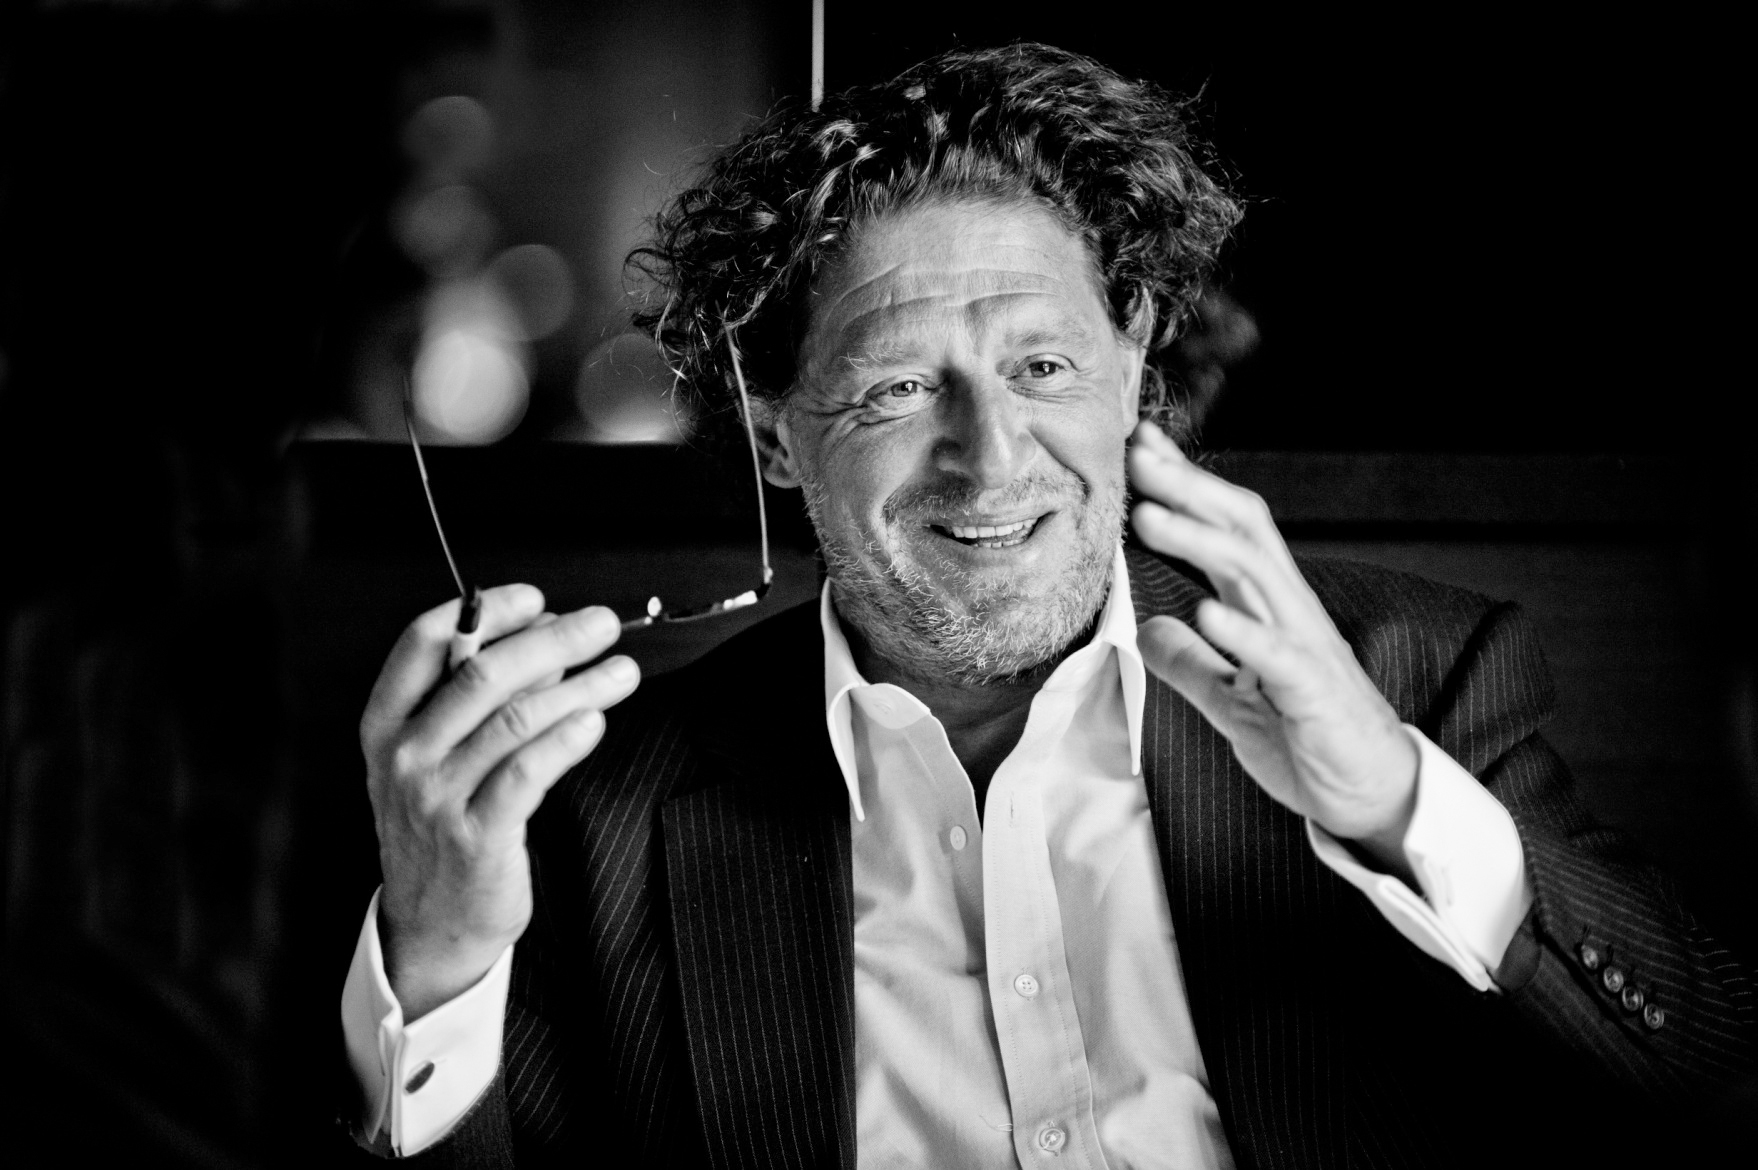 Celeb chef Marco Pierre White to meet diners at his Glasgow restaurant